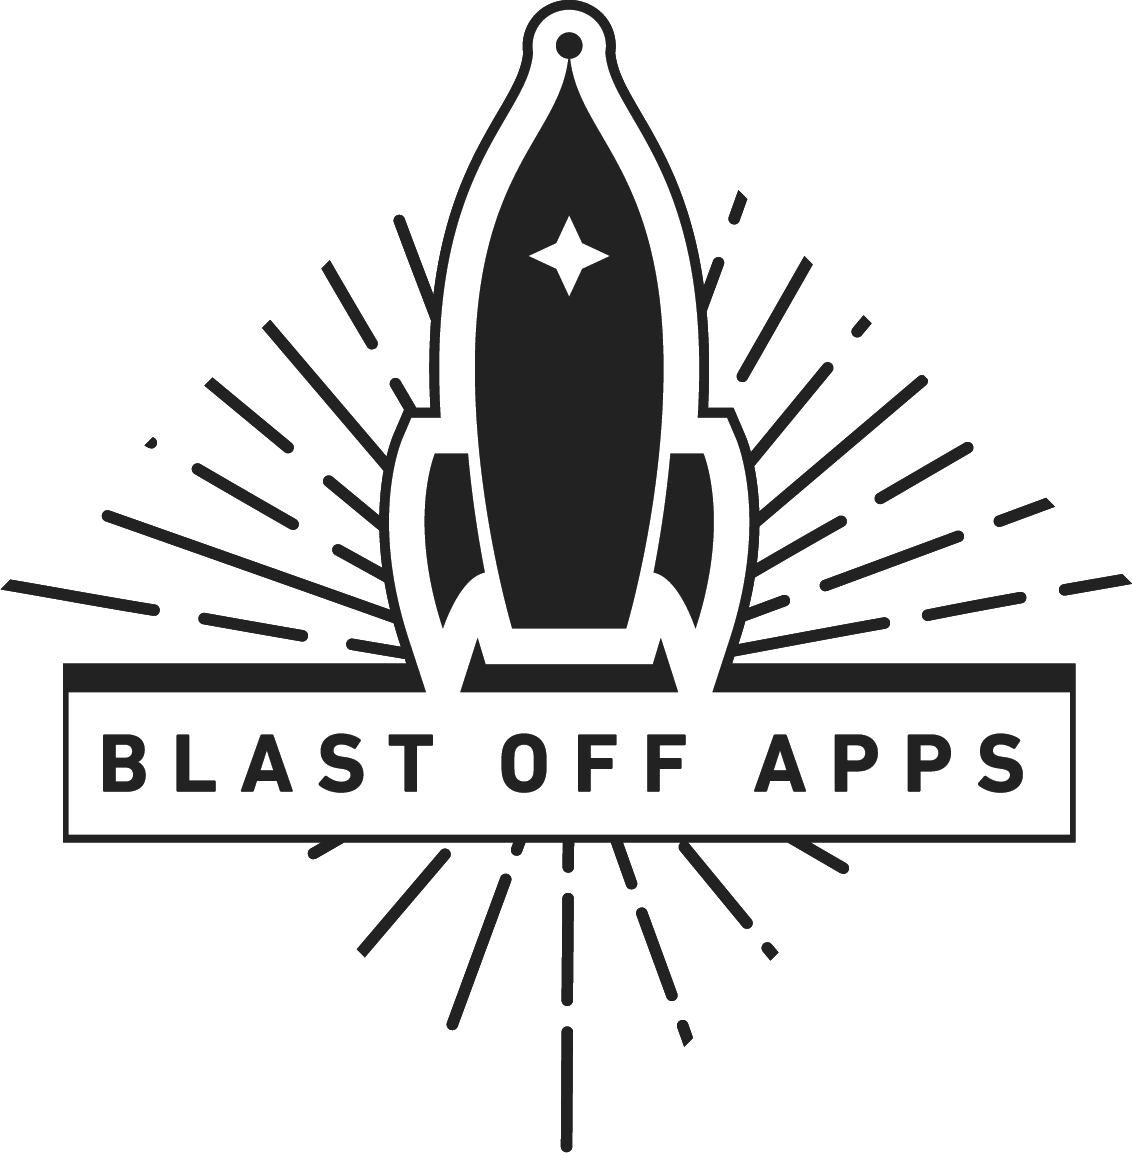 Blast off png. Apps aboutcareerscontact